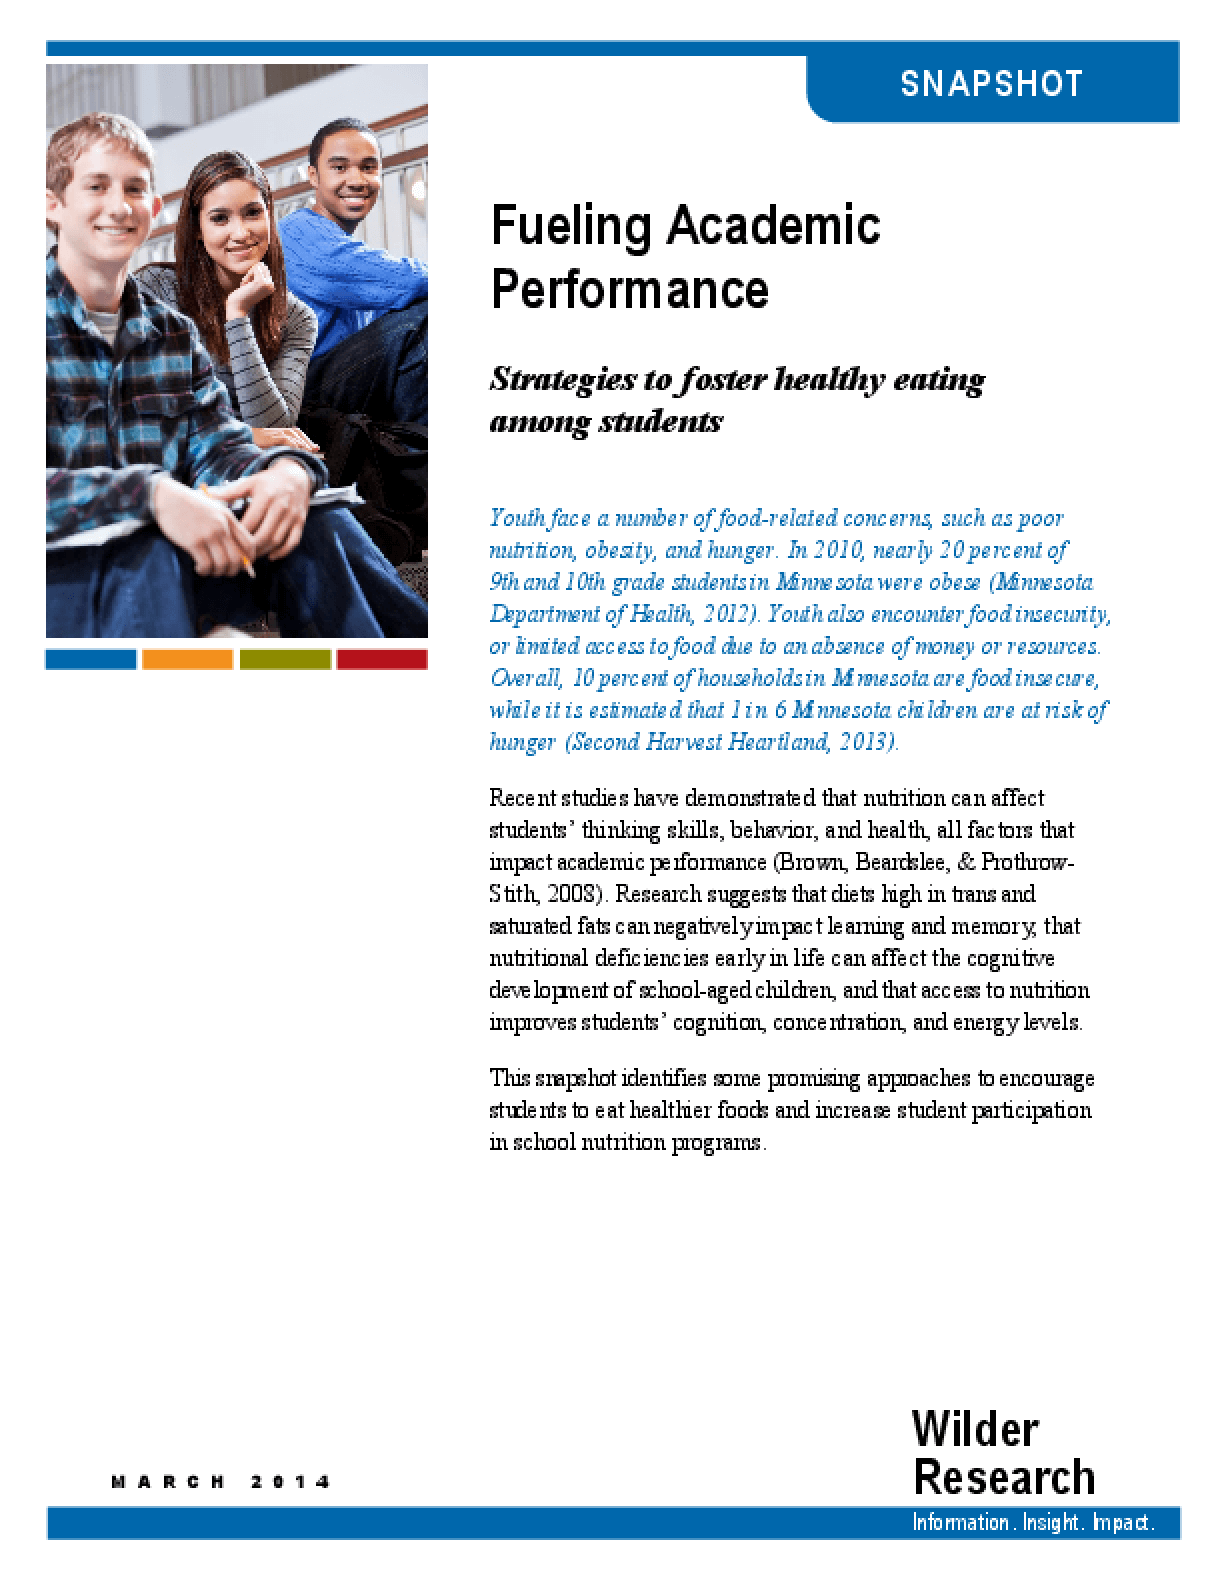 Fueling Academic Performance: Strategies to Foster Healthy Eating Among Students